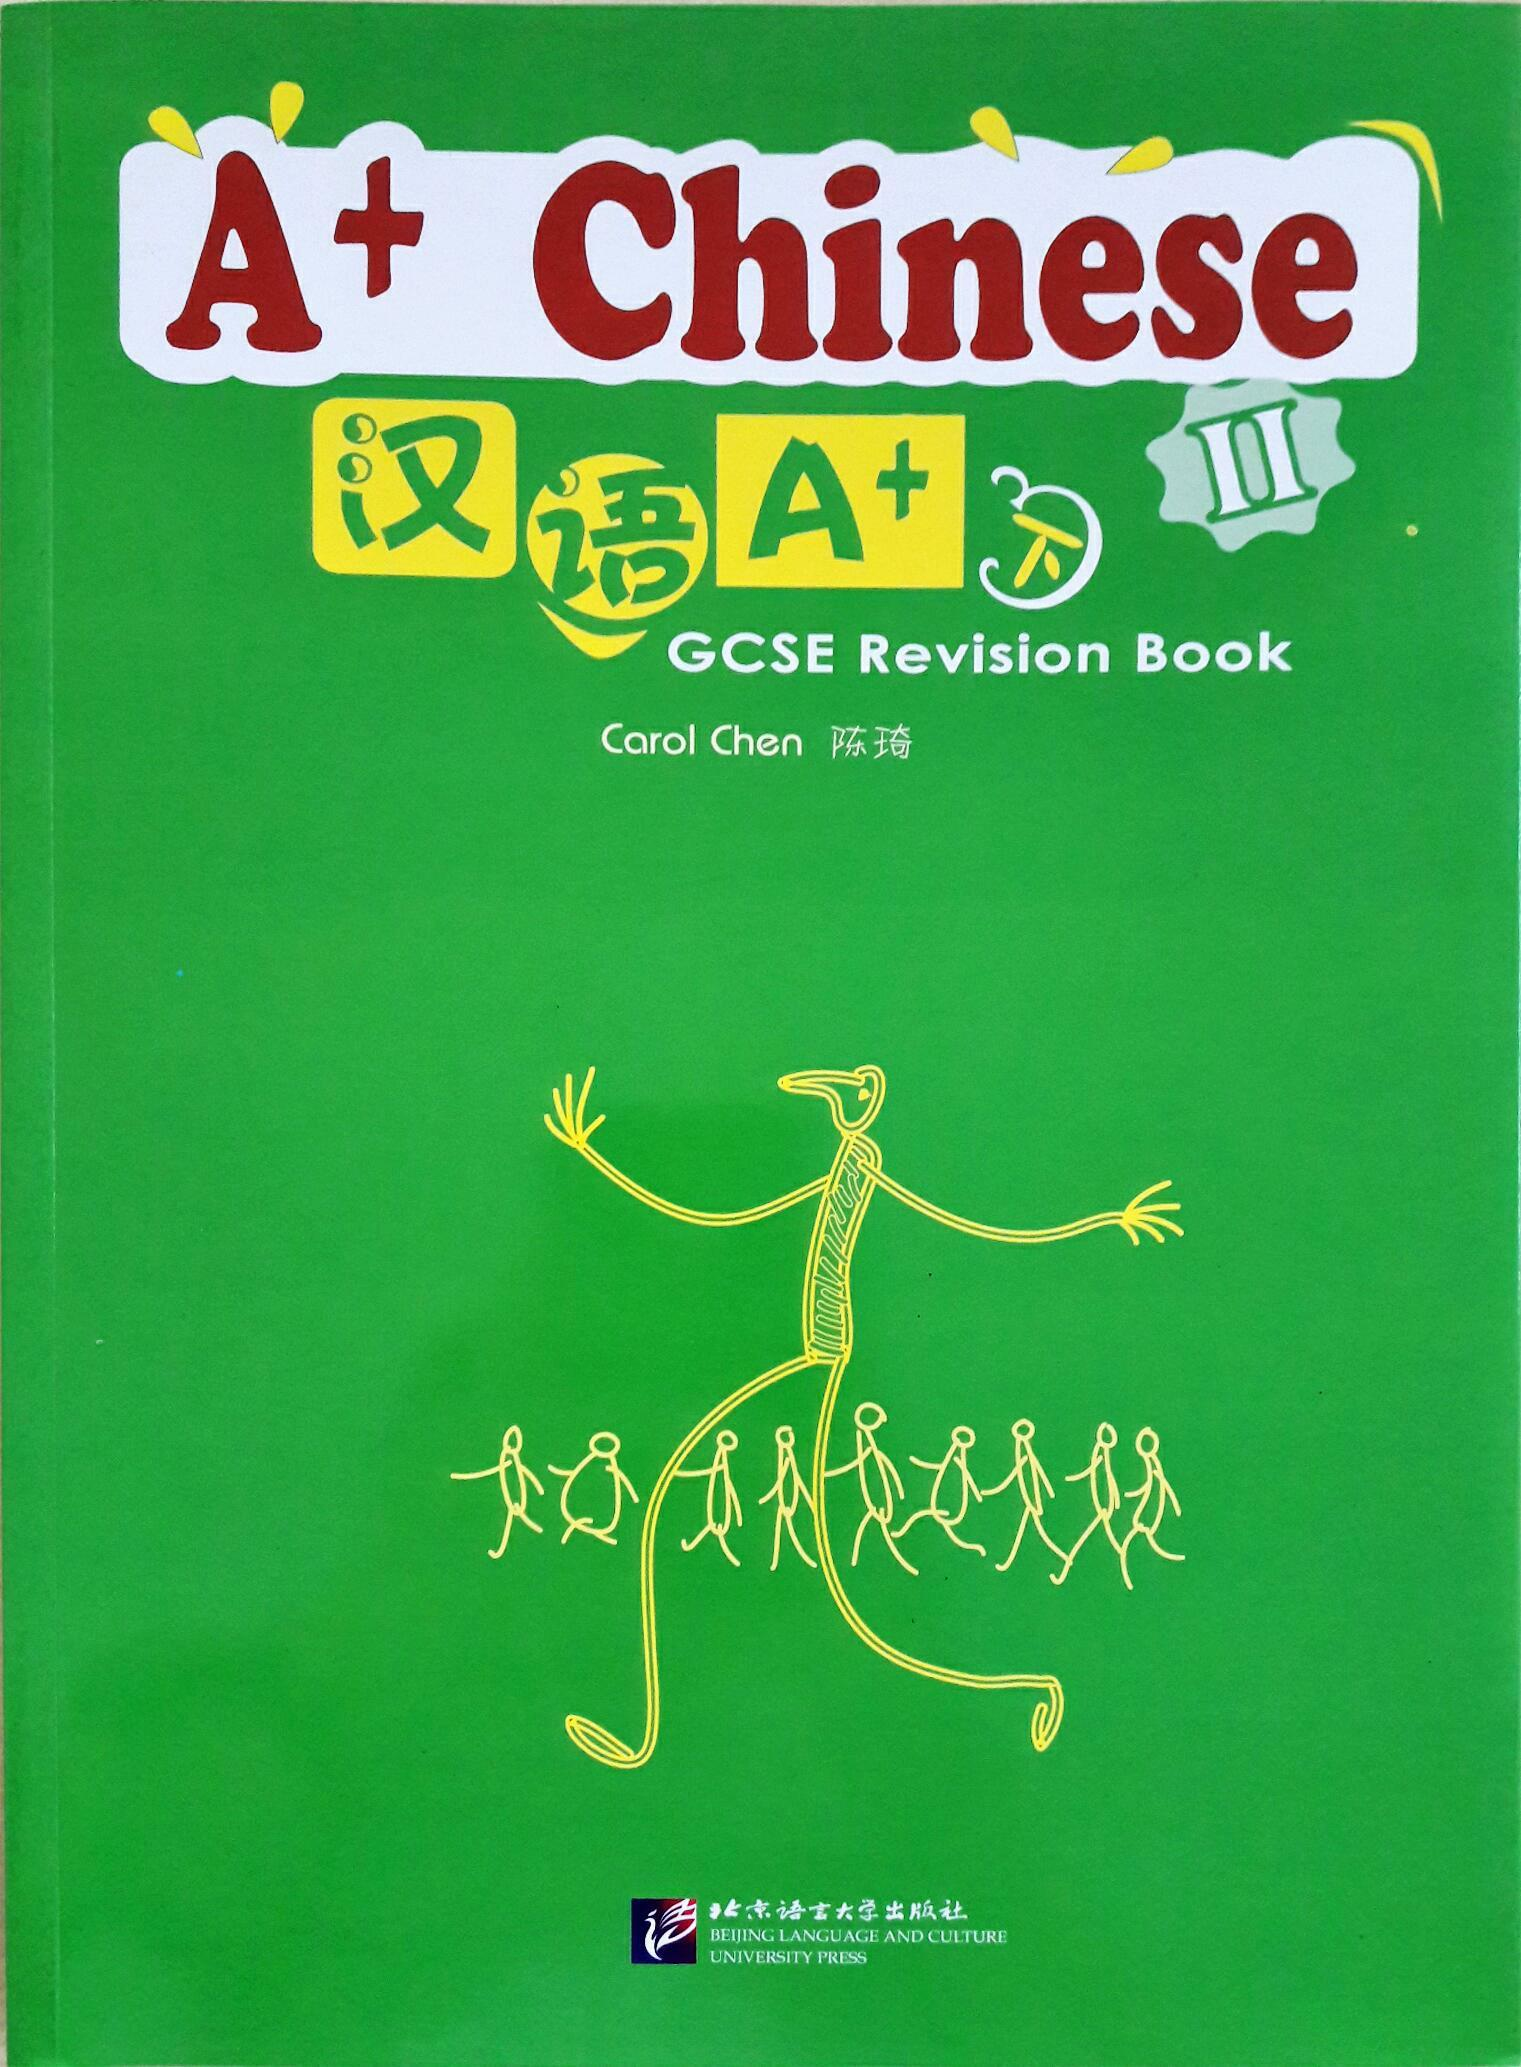 Ready Stock Chinese Book for IGCSE: IGCSE Revision Book《漢語A+ 下冊》(A+ Chinese vol 2)初學者小孩中文華語華文 – EDU ...